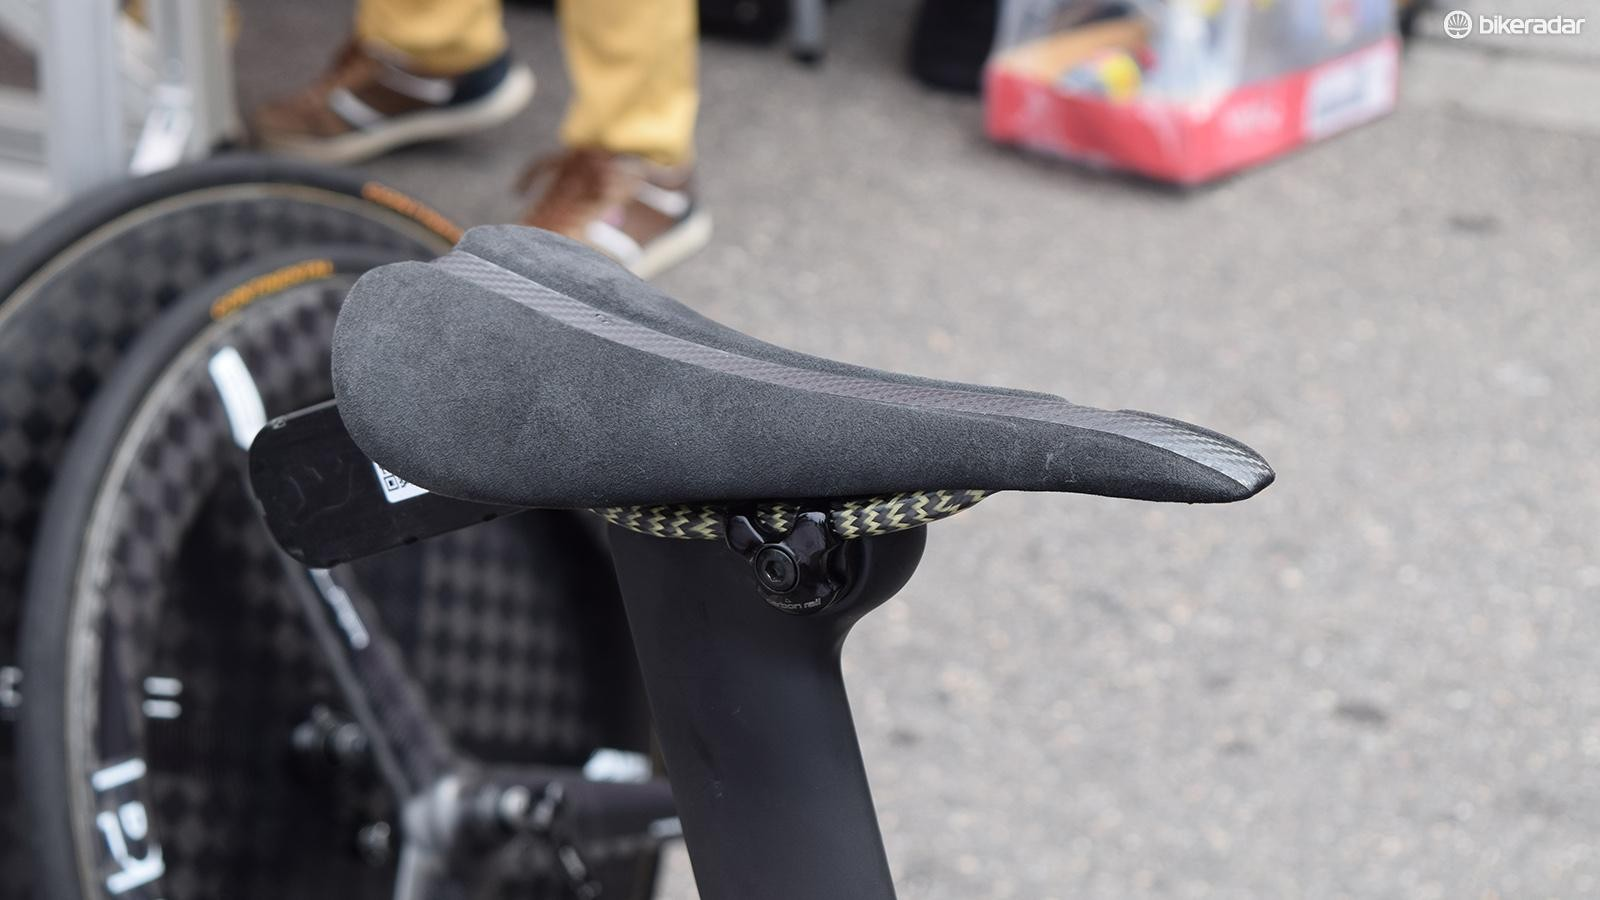 Bob Jungels used what appeared to be a custom saddle on his time trial bike